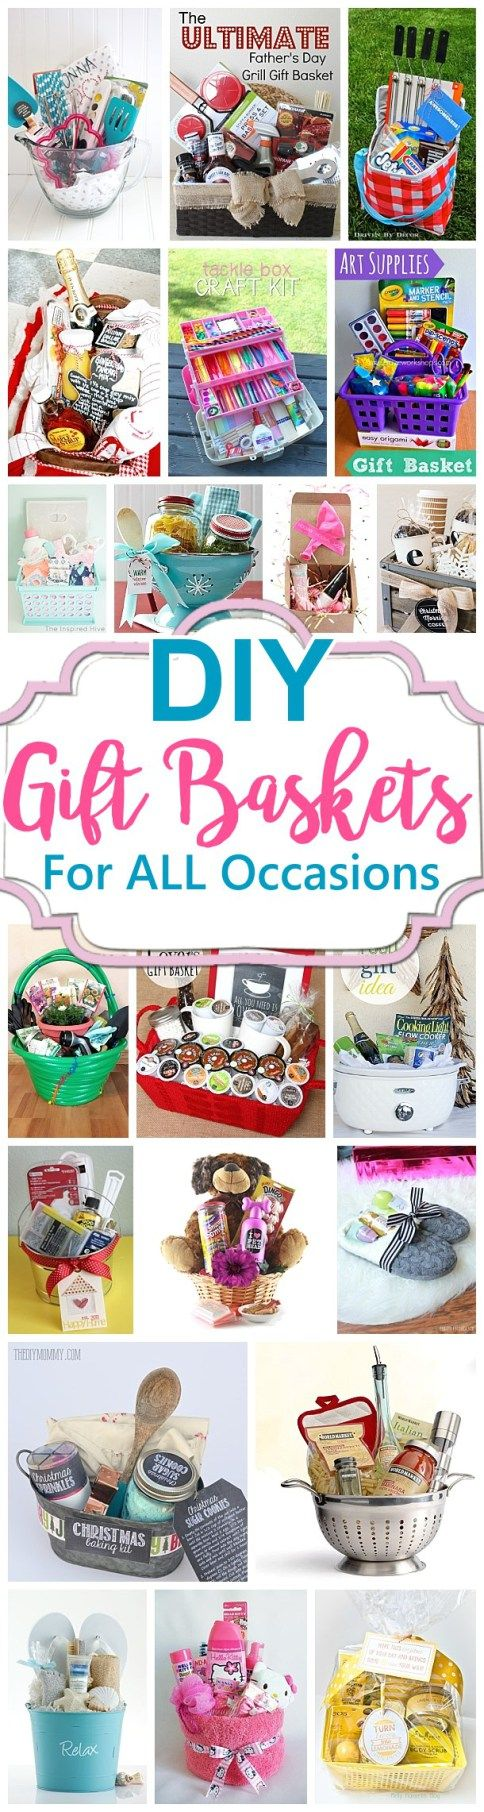 Do it Yourself Gift Baskets Ideas for Any and All Occasions - Perfect DIY Gift Baskets for Christmas - Birthdays - Thank You Gifts - Housewarmings - Baby Showers or anytime More